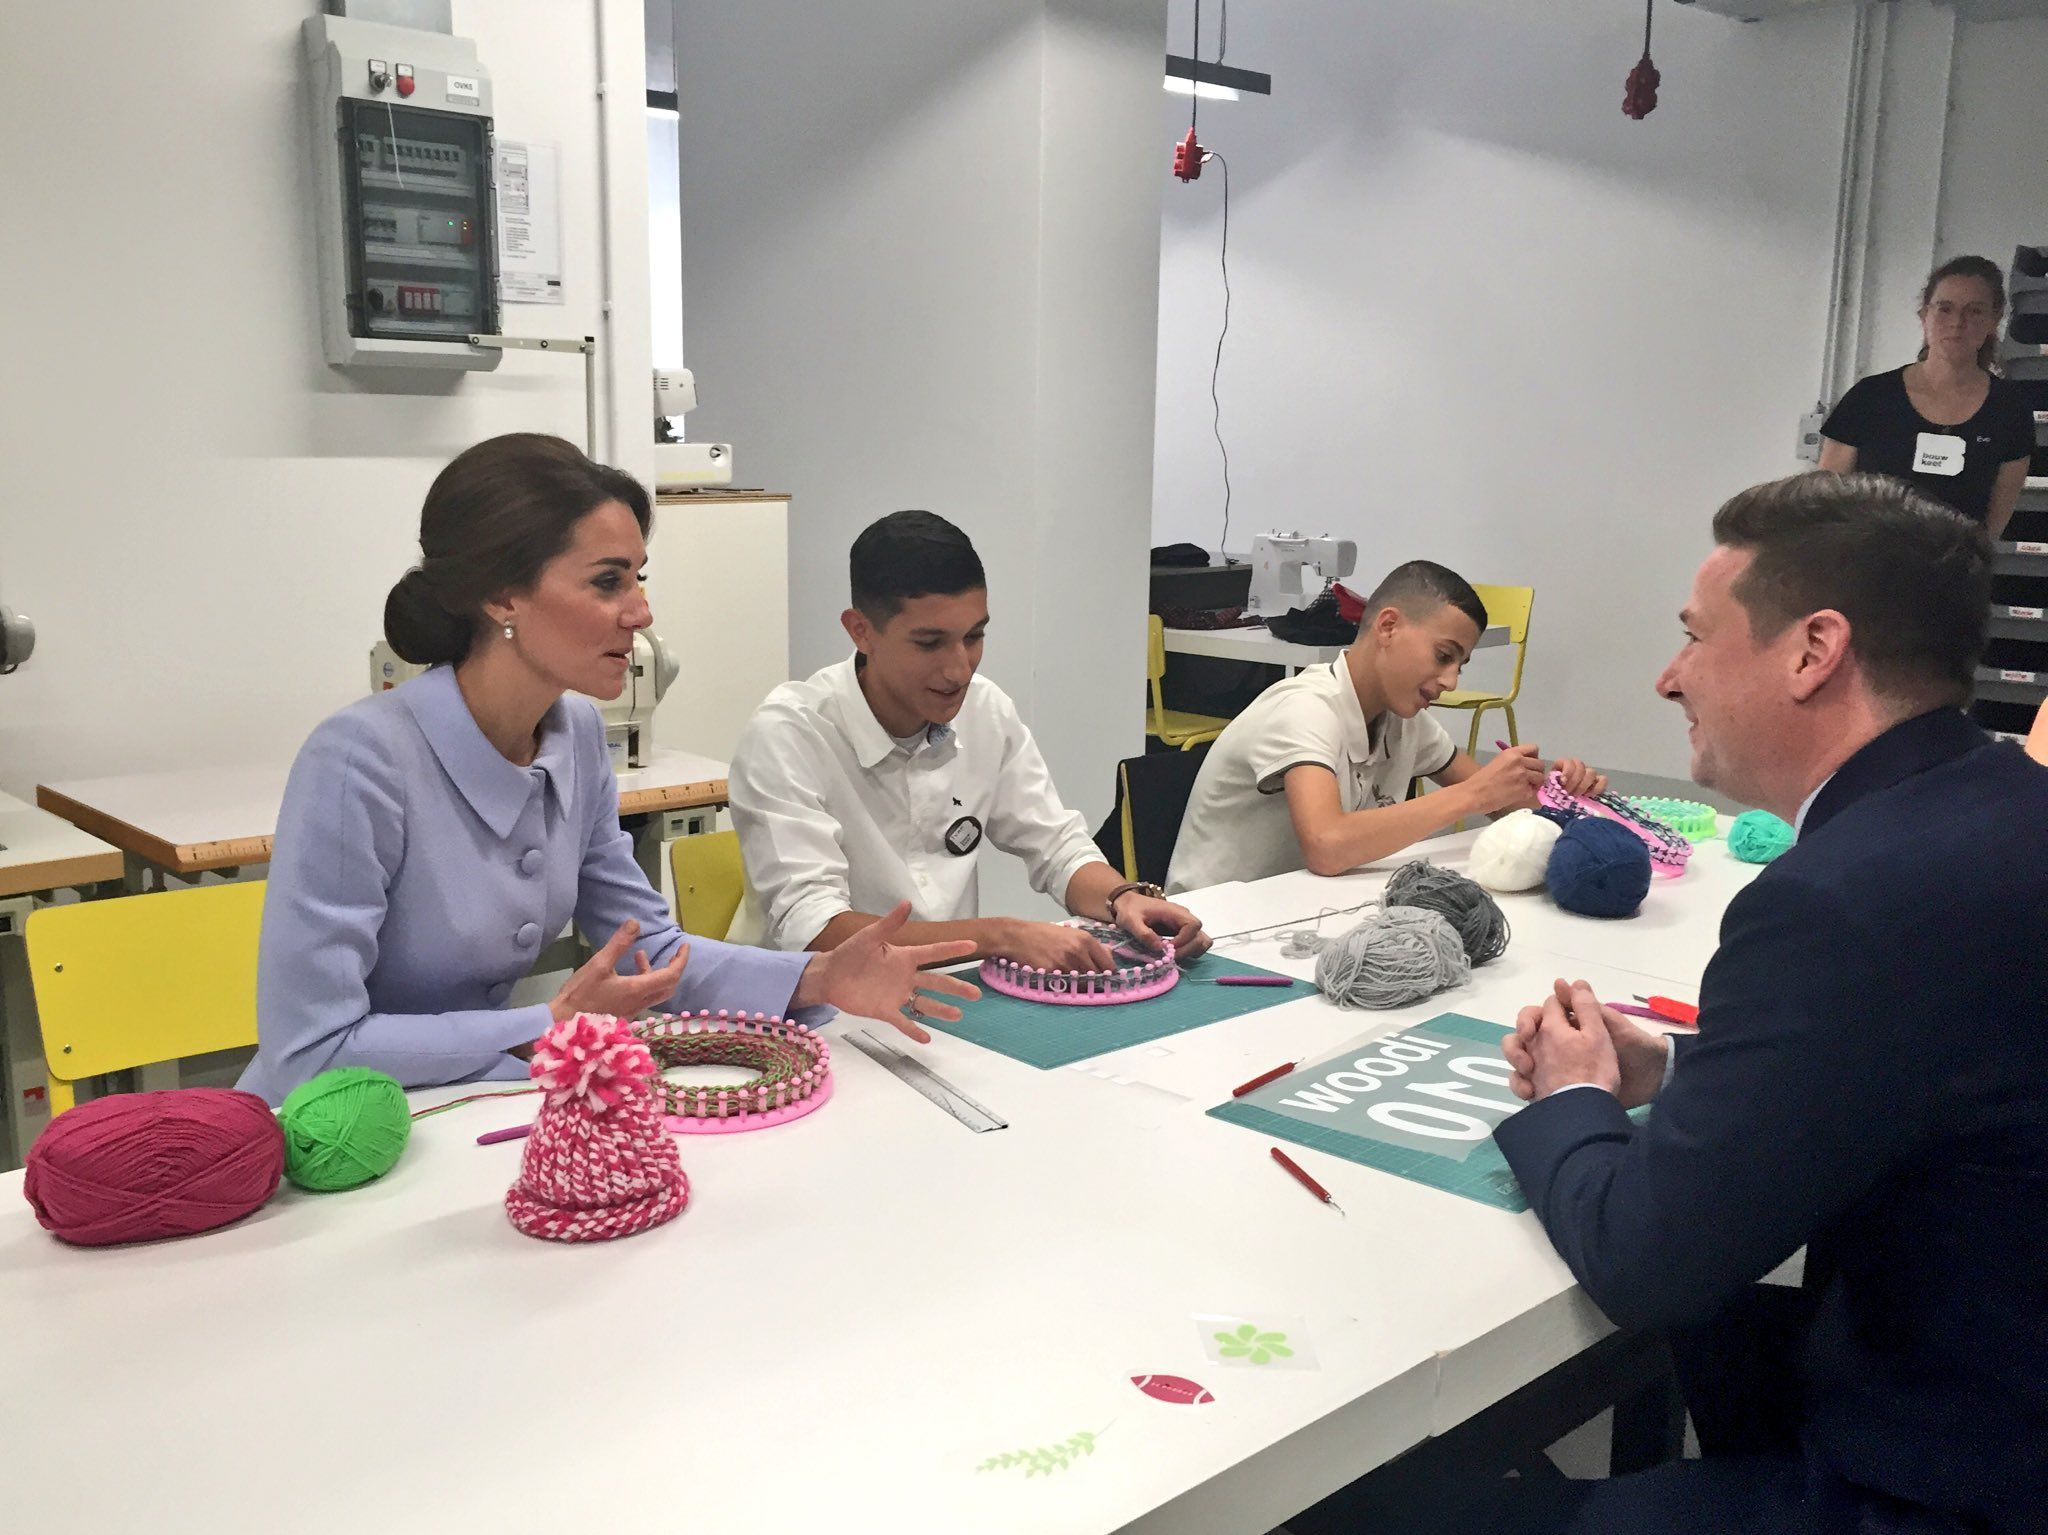 """Kensington Palace on Twitter: """"Textiles, ceramics, bike mechanics and IT programming are just some of the skills local craftsman share with local kids @BouwKeet_RTD"""